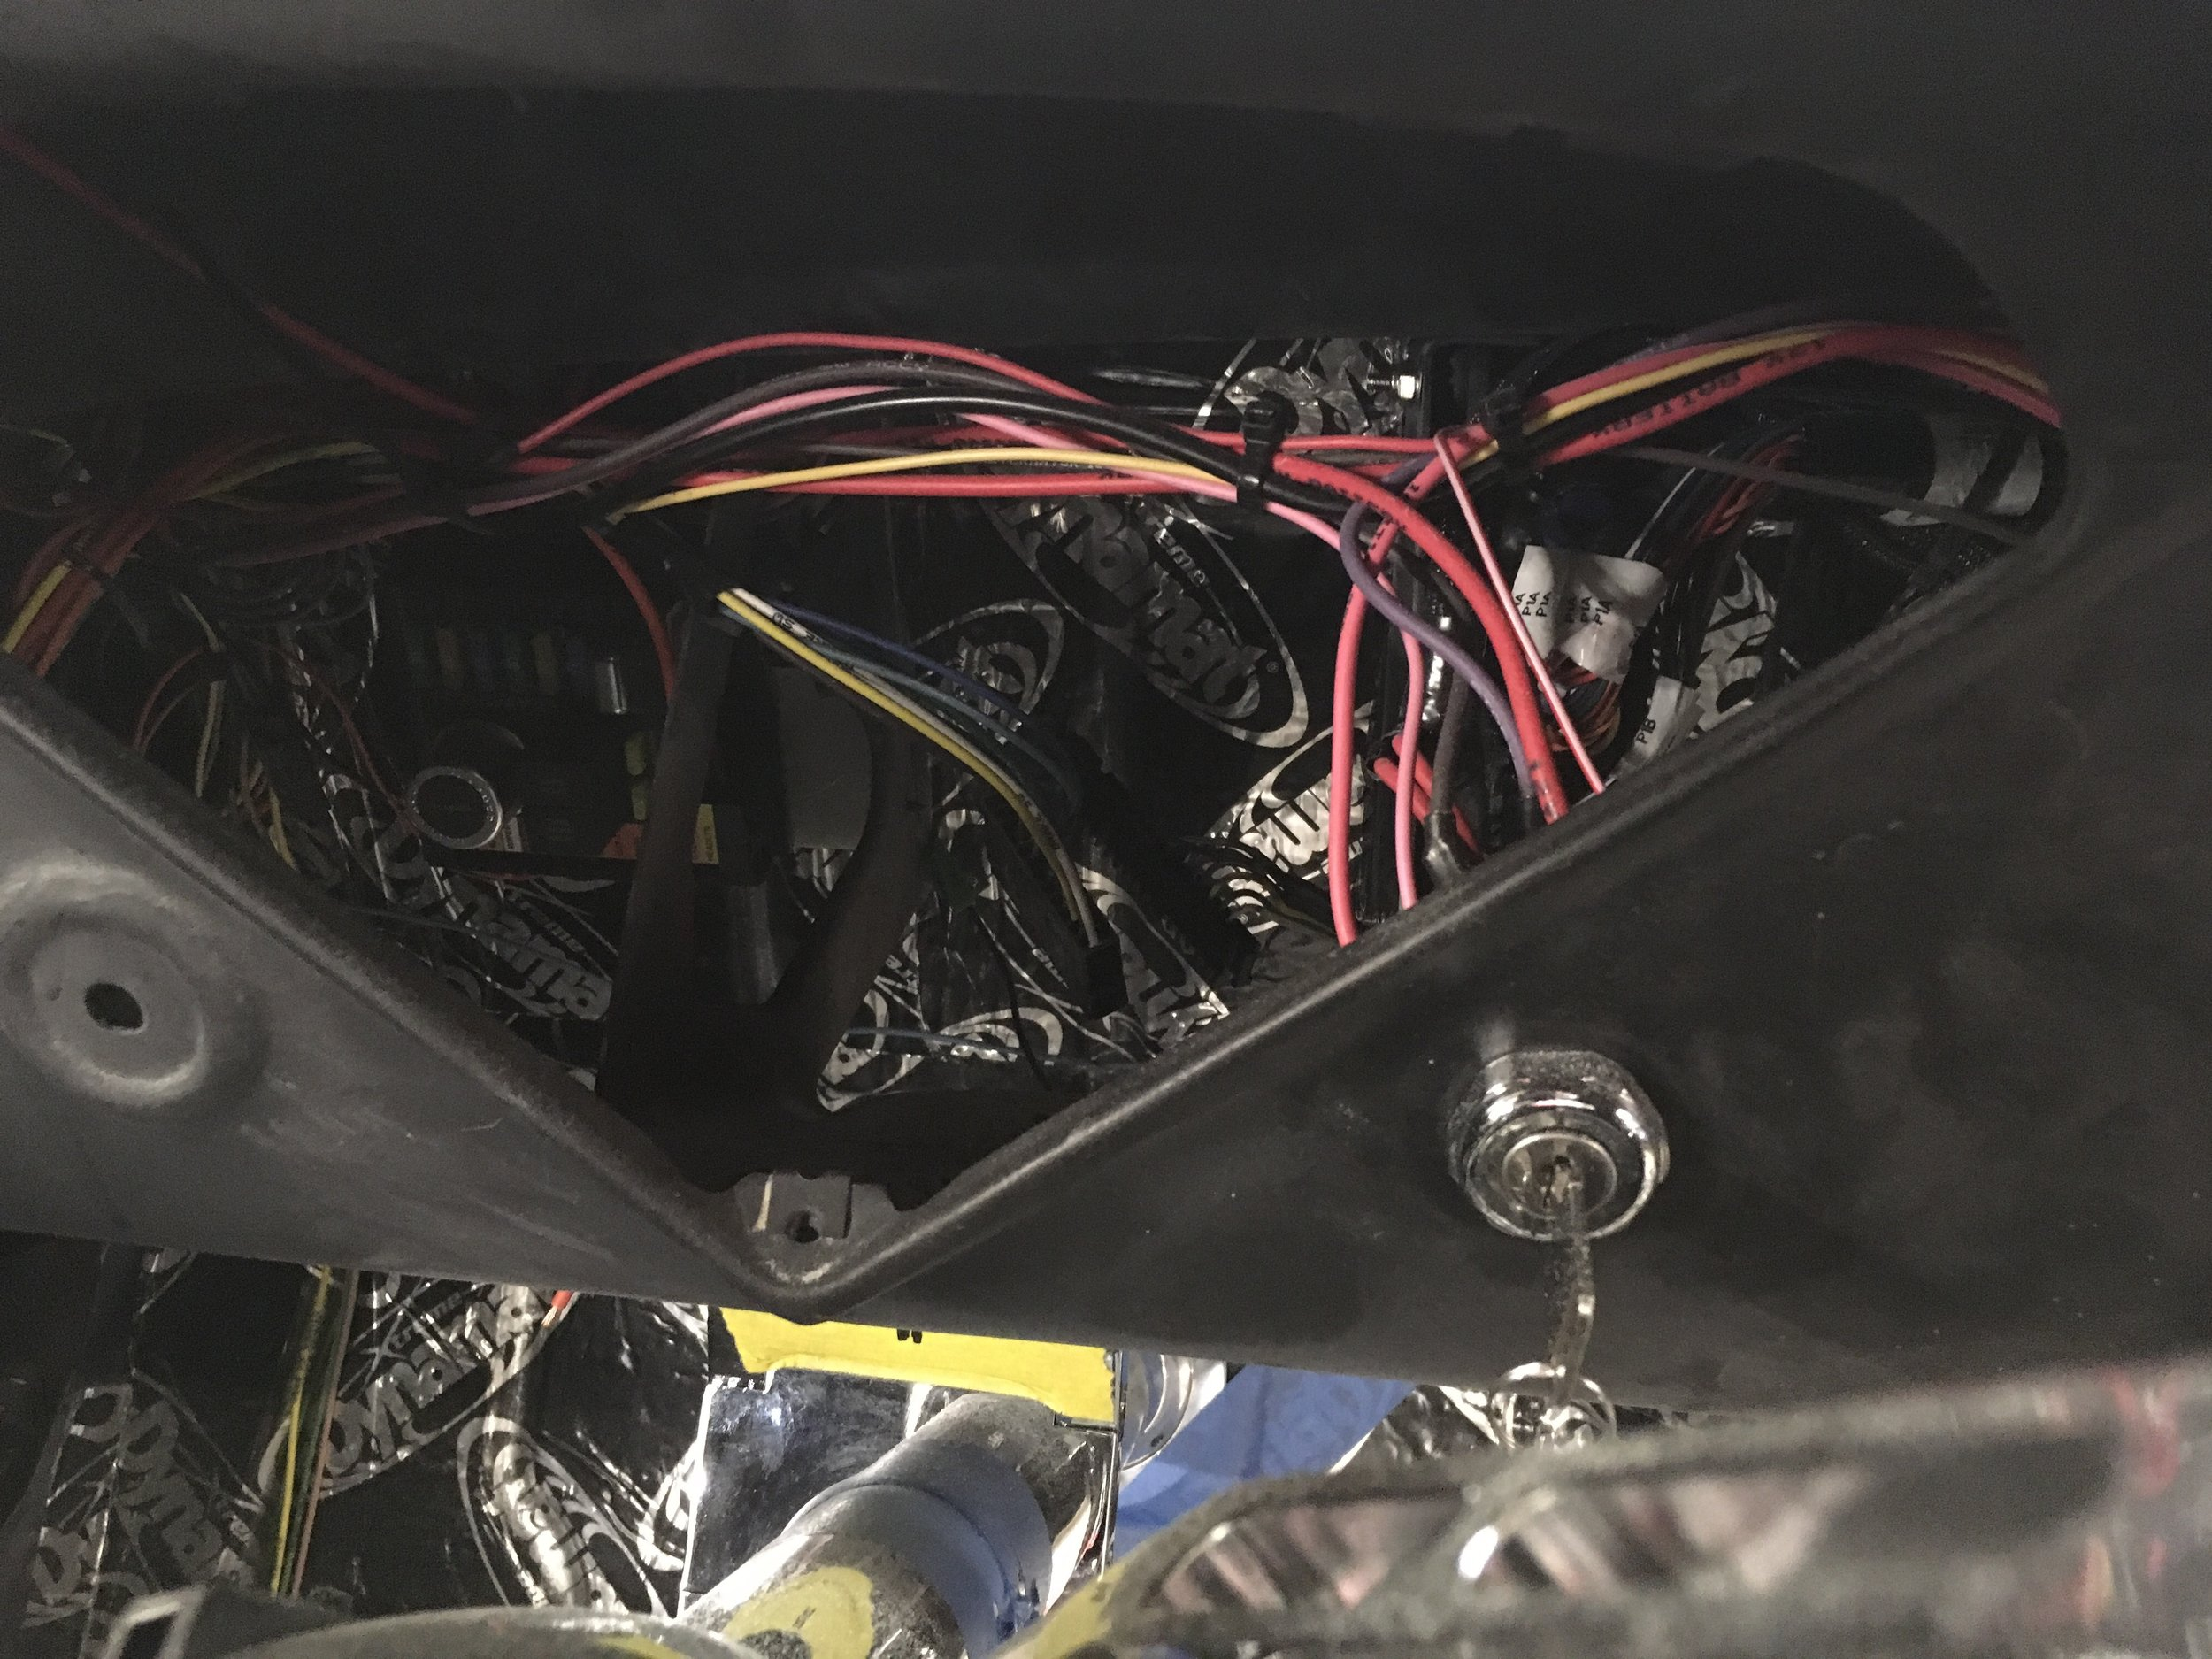 Wiring for vintage air and computer, 55 Chevy pickup.